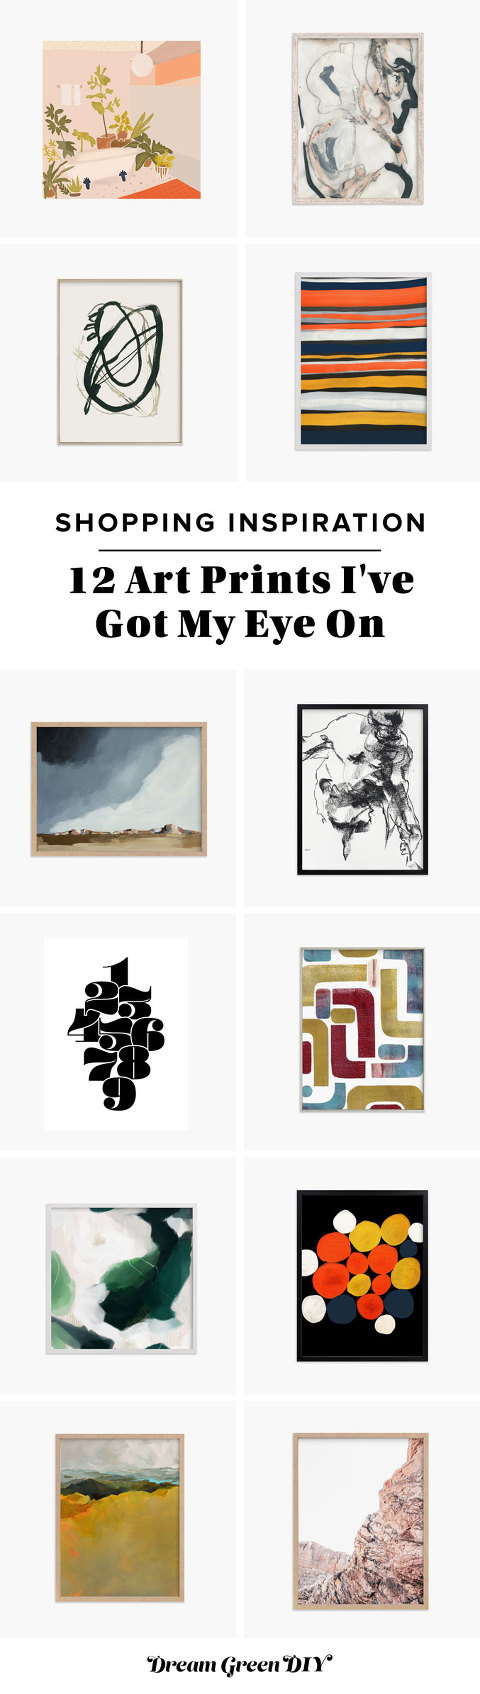 12 Art Prints I've Got My Eye On